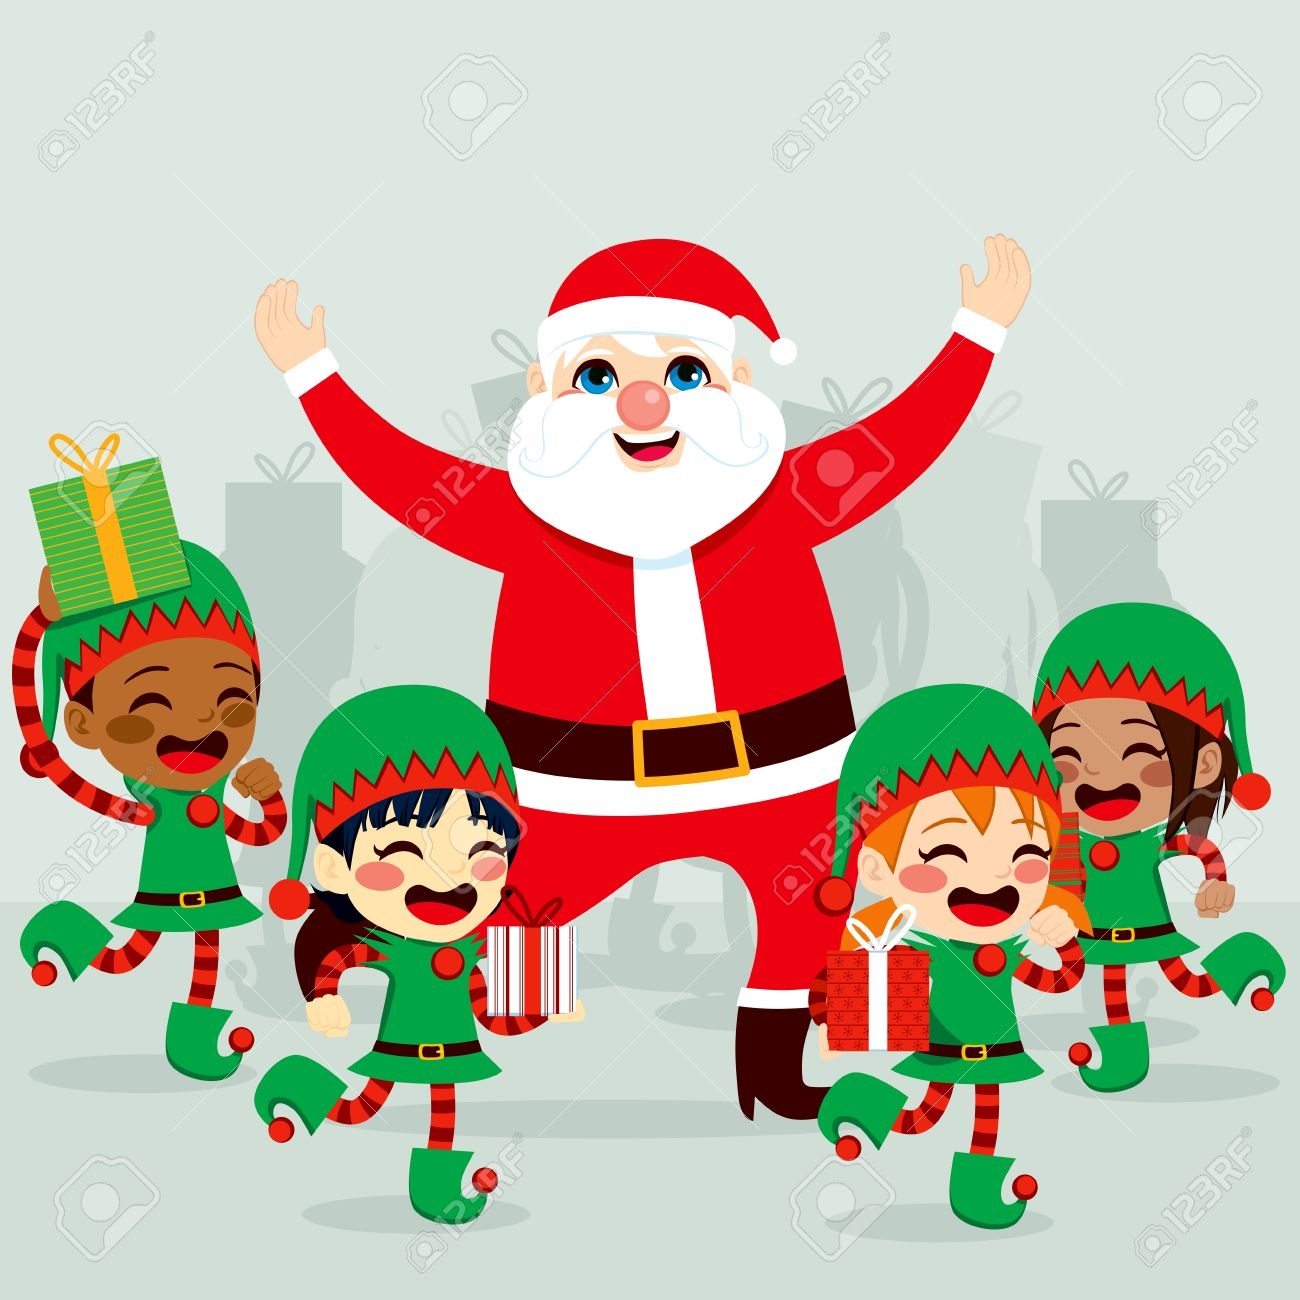 Santa Claus with little helper elves dancing around and preparing...